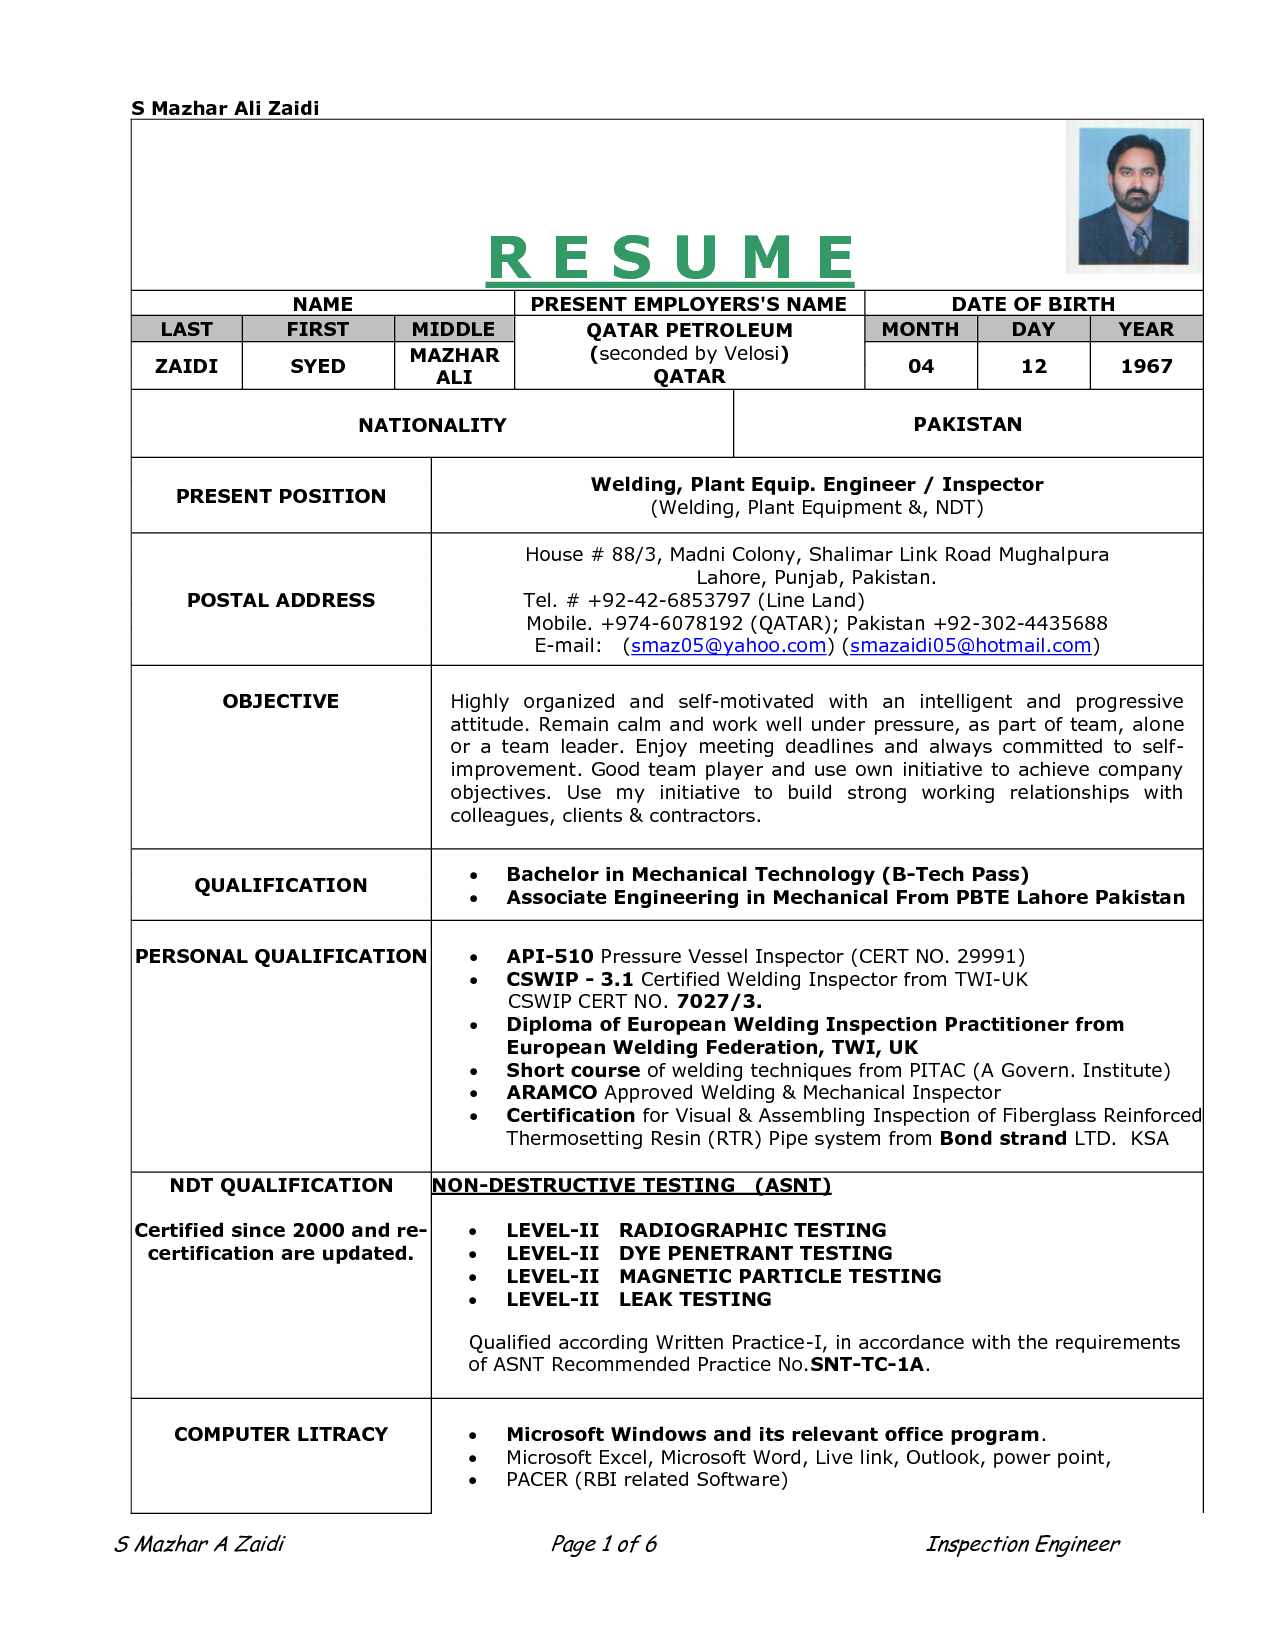 Resume Bullet Points Examples Re Work Procedure Resumedoc Download Legal Documents Re Work